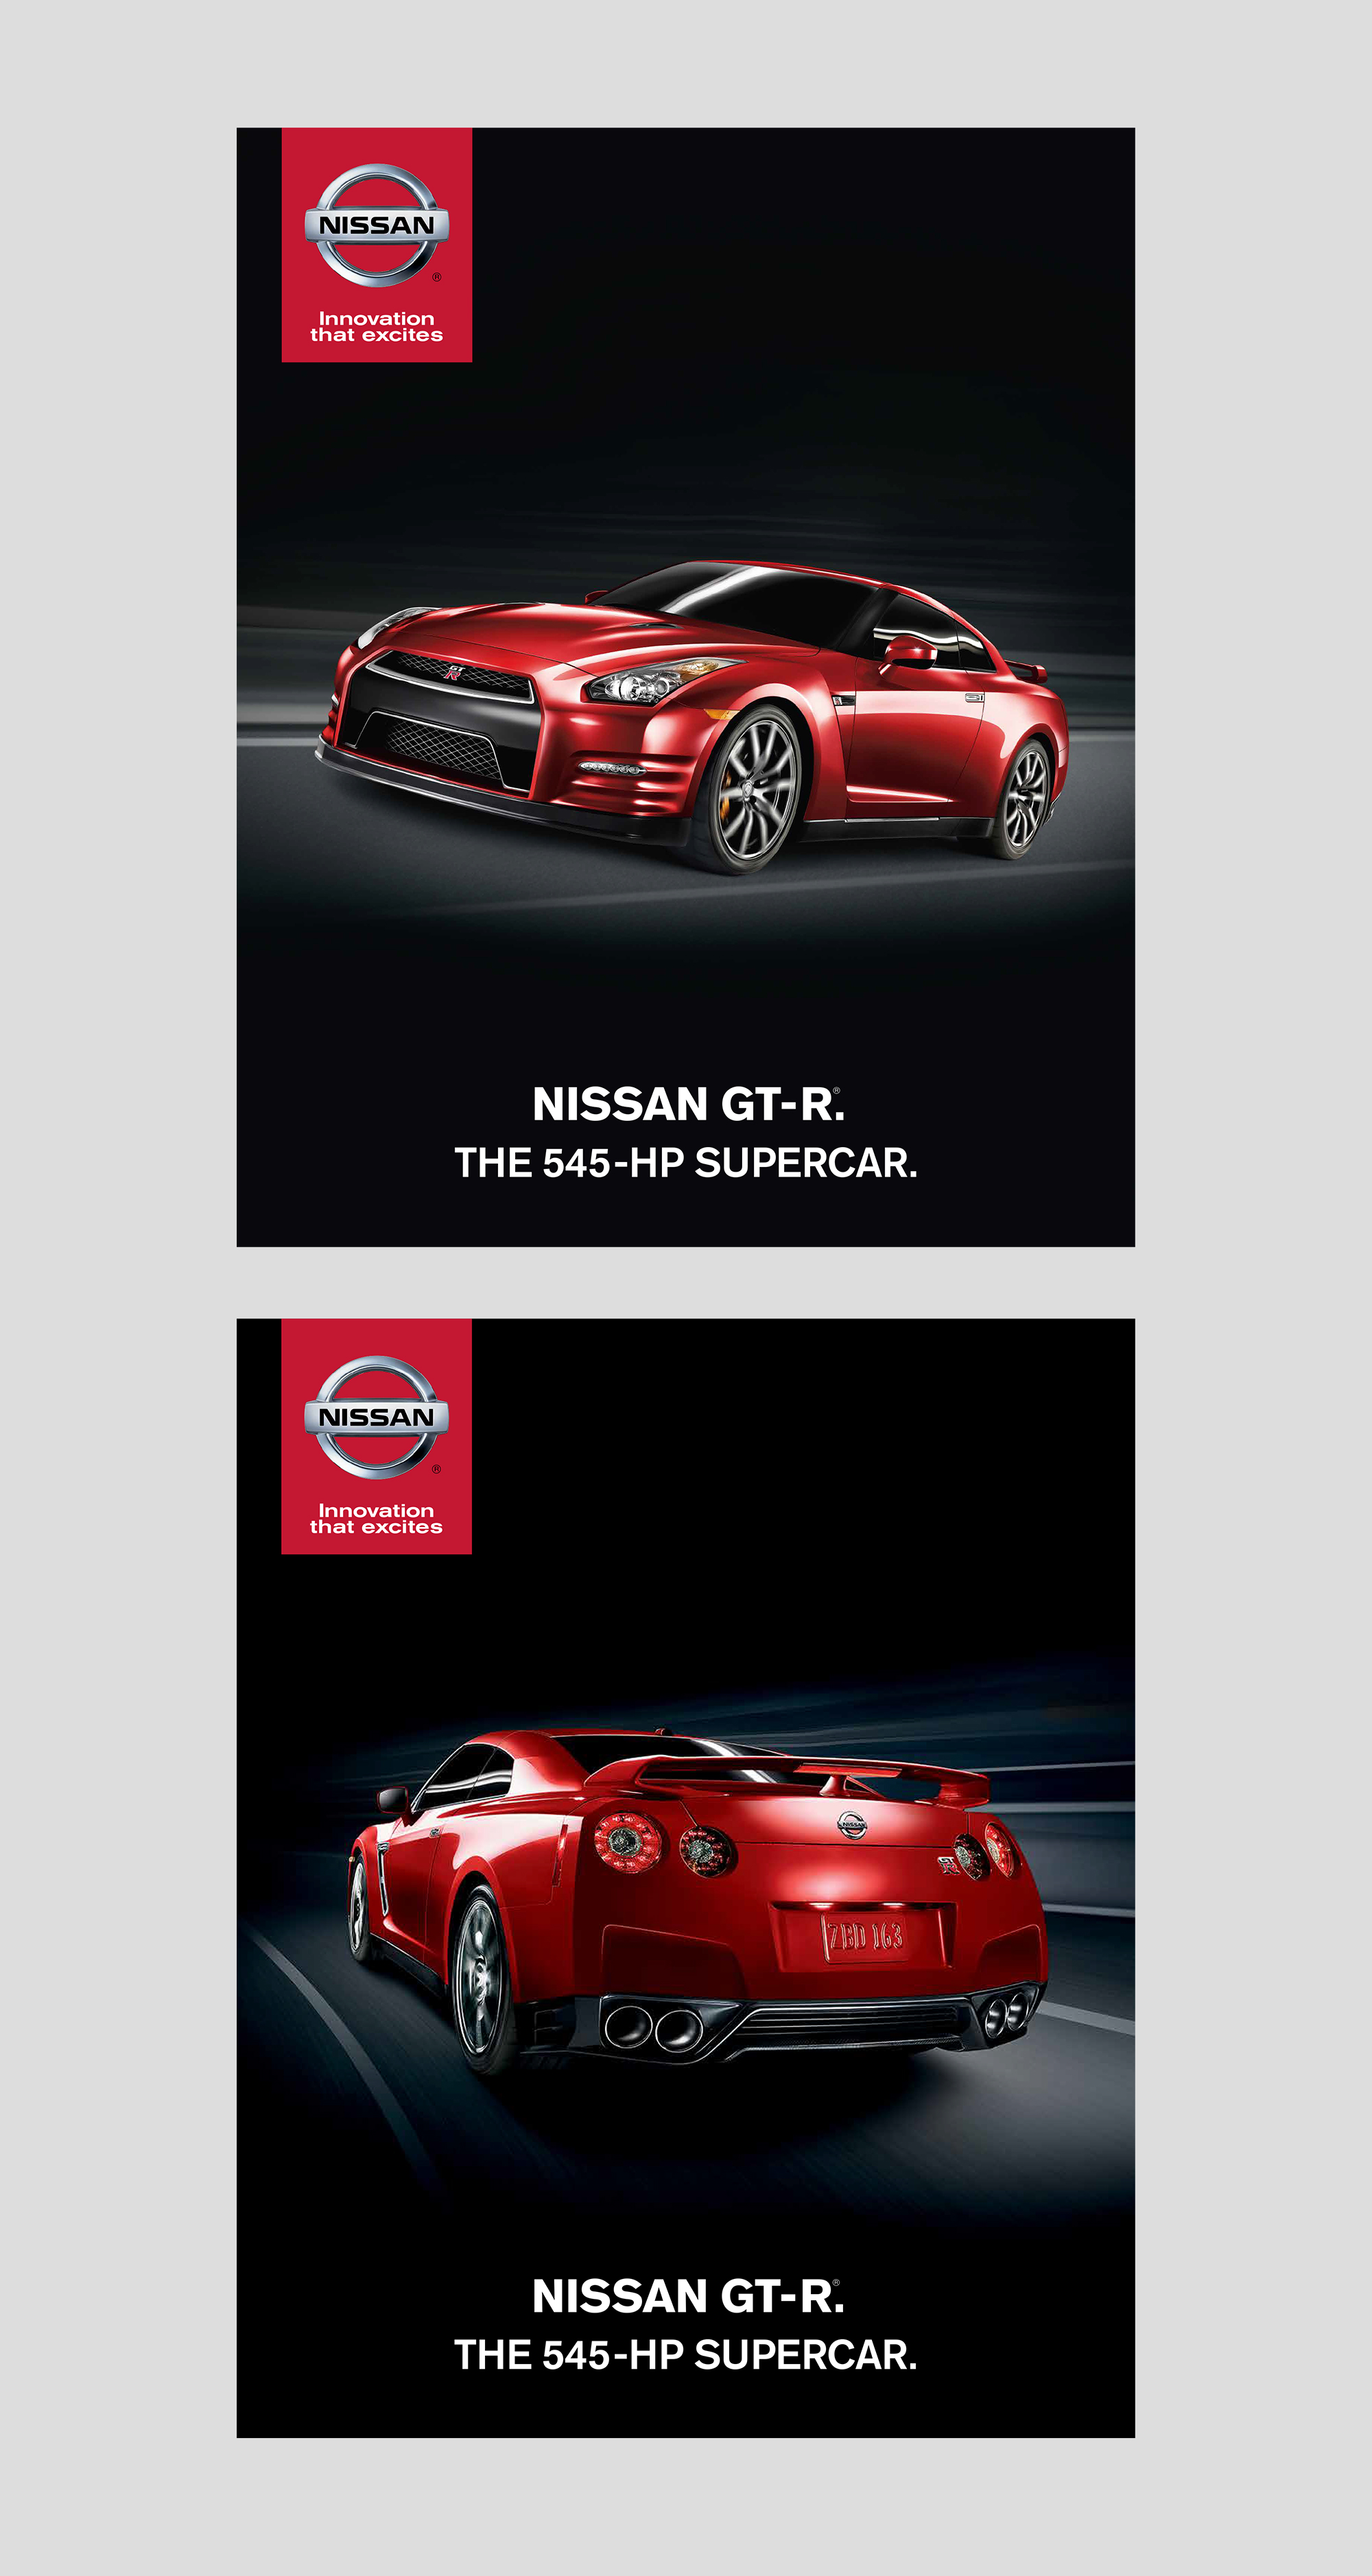 Nissan GT-R Print Ads: Layout | Production